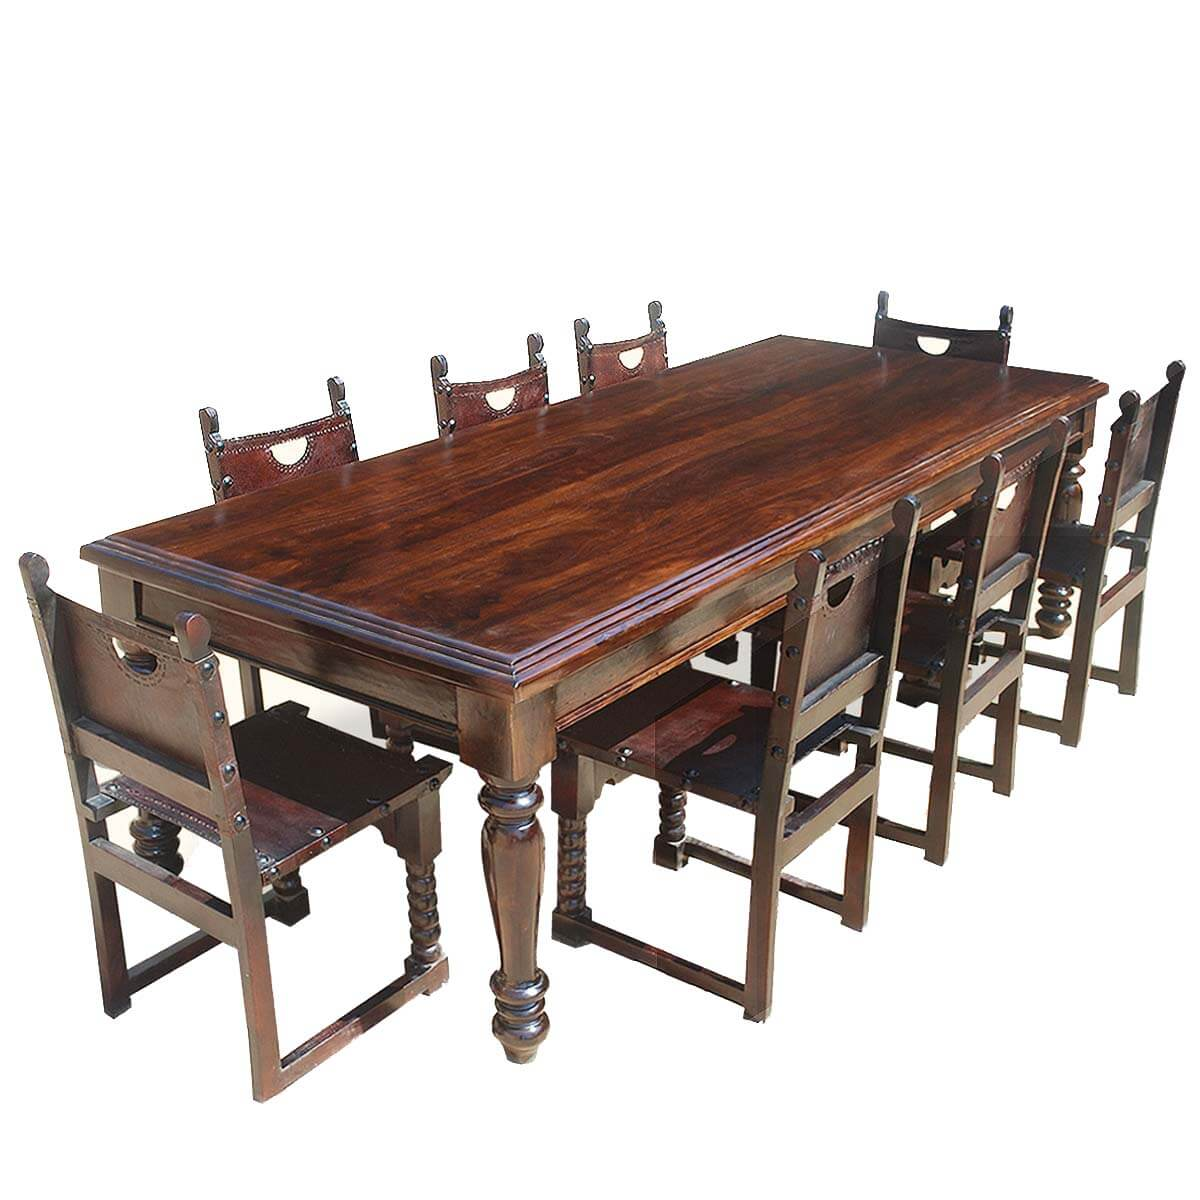 Large rustic solid wood dining room table w 8 leather for Dining room table chairs